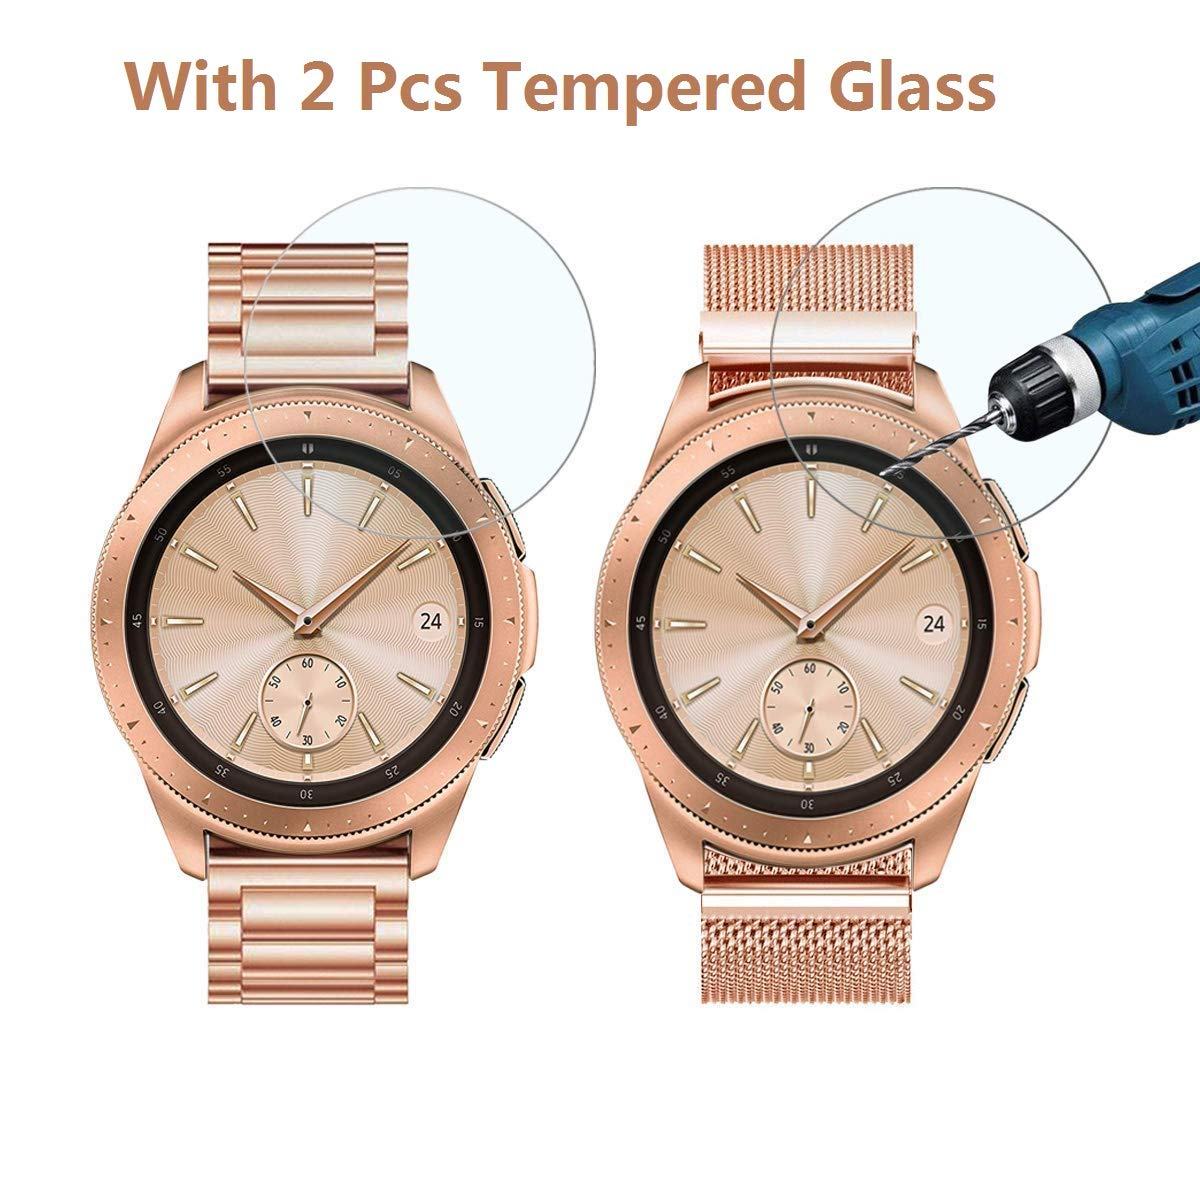 CAGOS Compatible Galaxy Watch 42mm/Galaxy Watch Active Bands Sets, 20mm 2 Pack Stainless Steel Band+Milanese Loop Mesh Bracelet for Samsung Galaxy Watch 42mm /Ticwatch E Smartwatch - Rose Gold by CAGOS (Image #2)